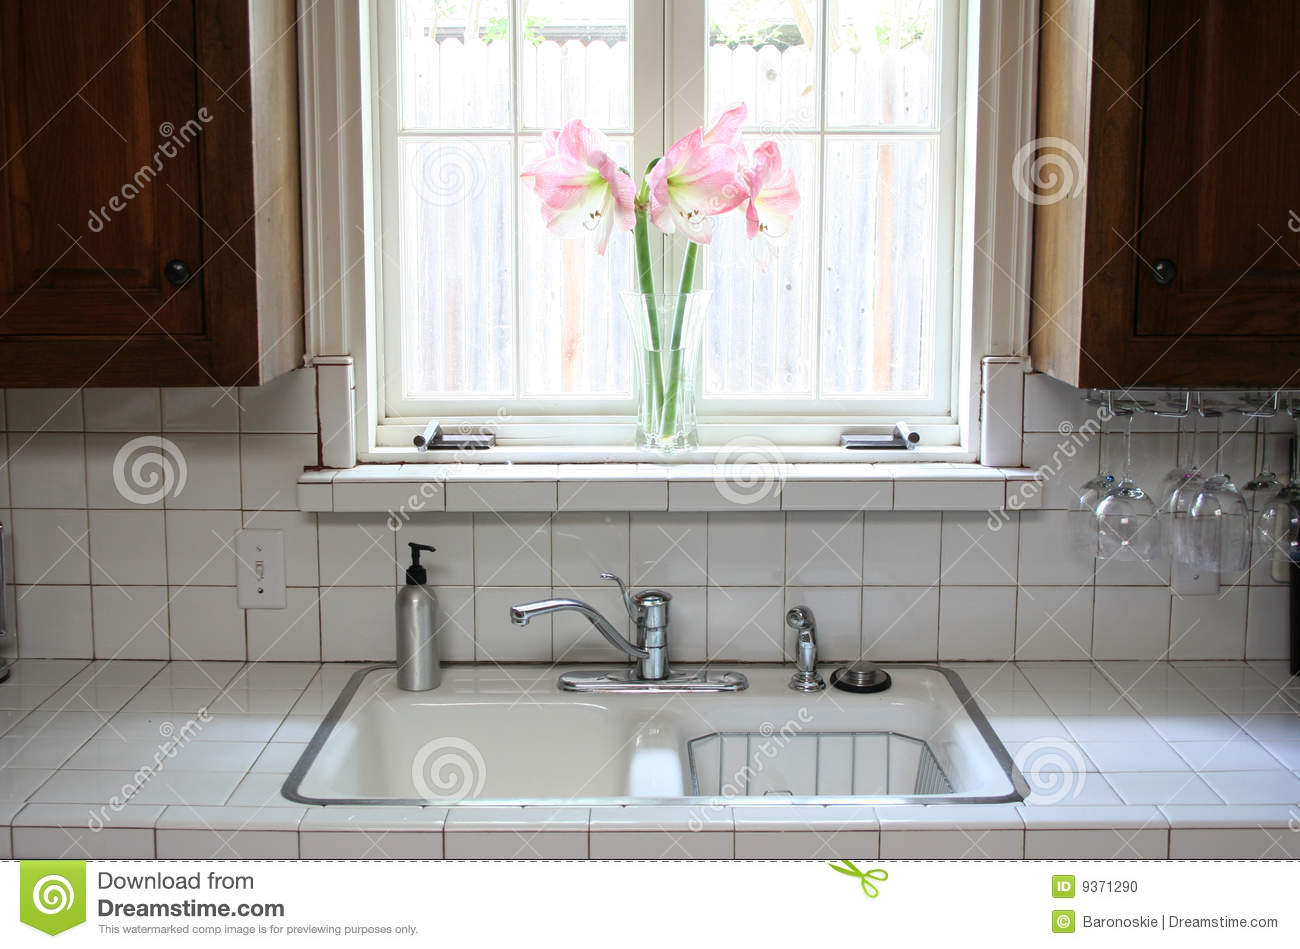 Kitchen Window Kitchen Window Stock Photo Image 9371290